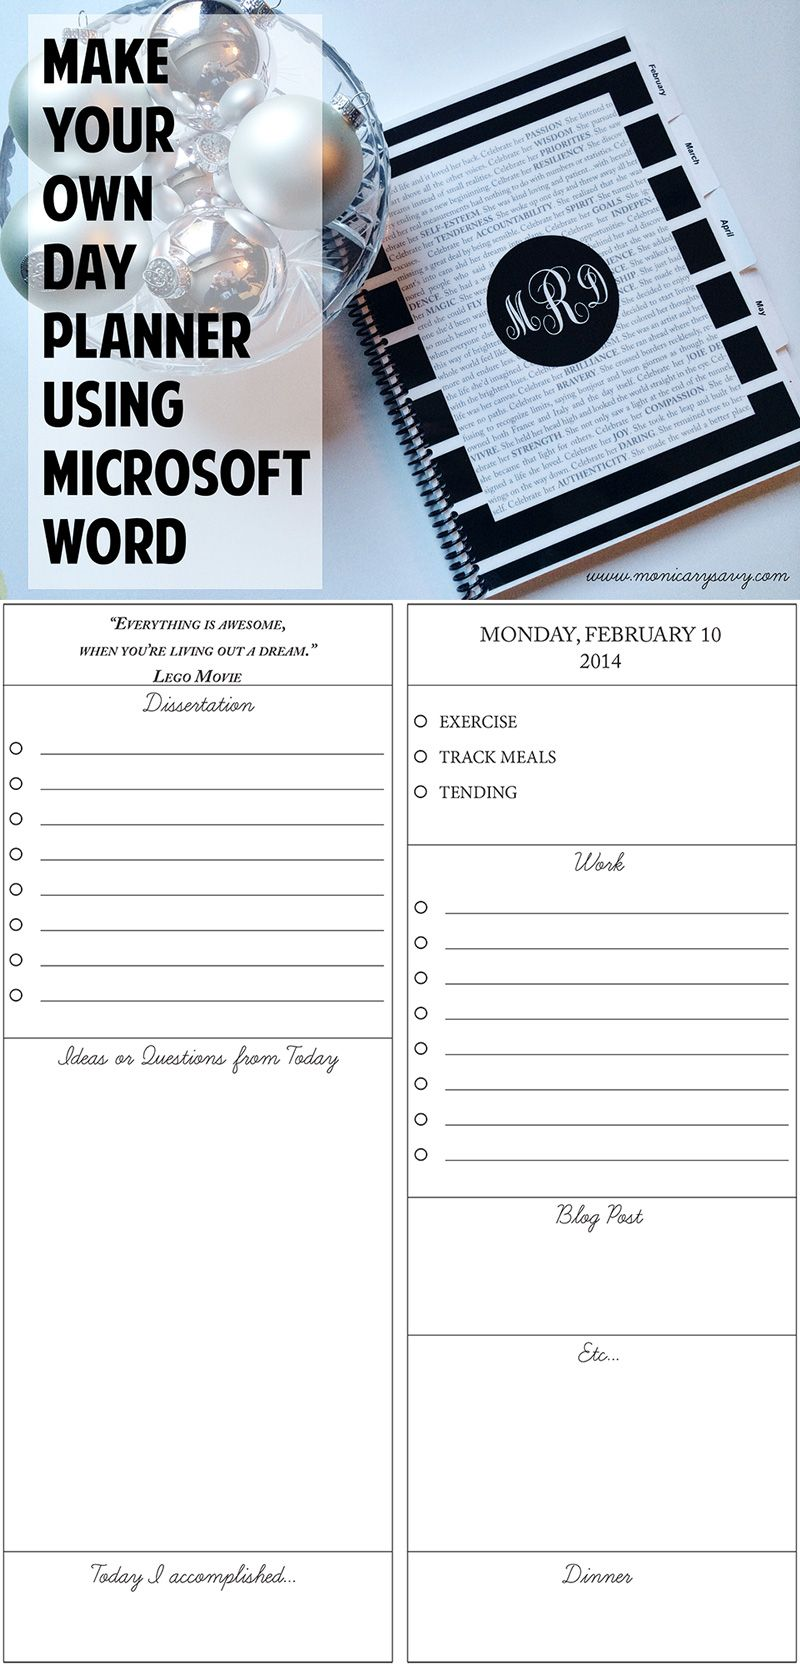 Make your own day planner using Microsoft Word Then get it printed